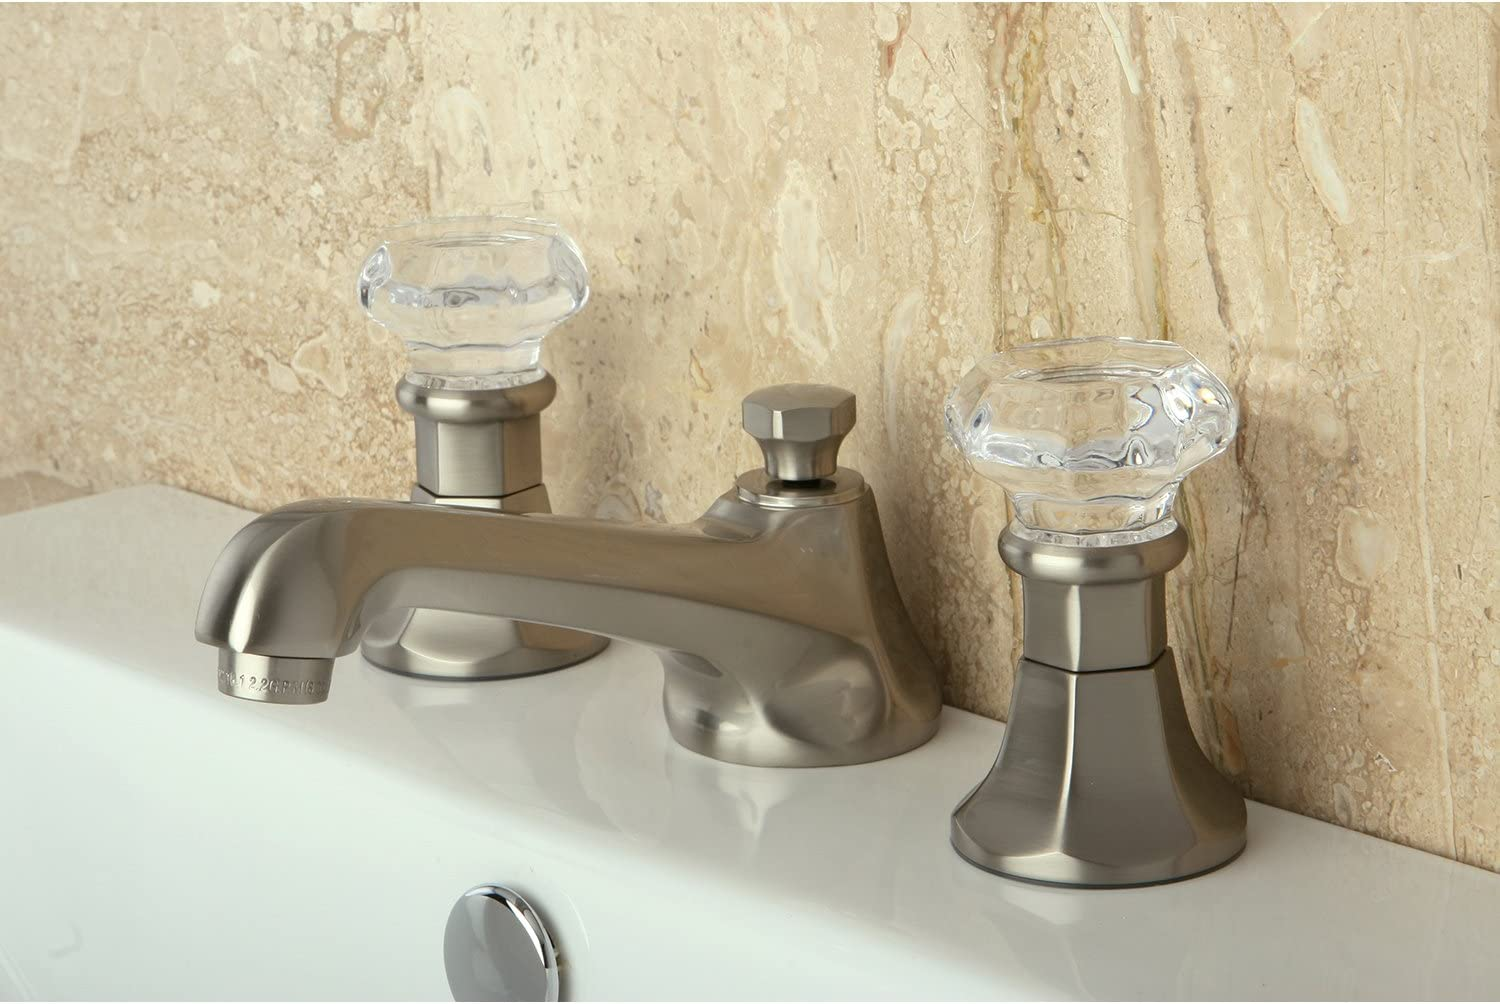 Kingston Brass KS4468WCL Celebrity 8-Inch Widespread Lavatory Faucet Brushed Nickel